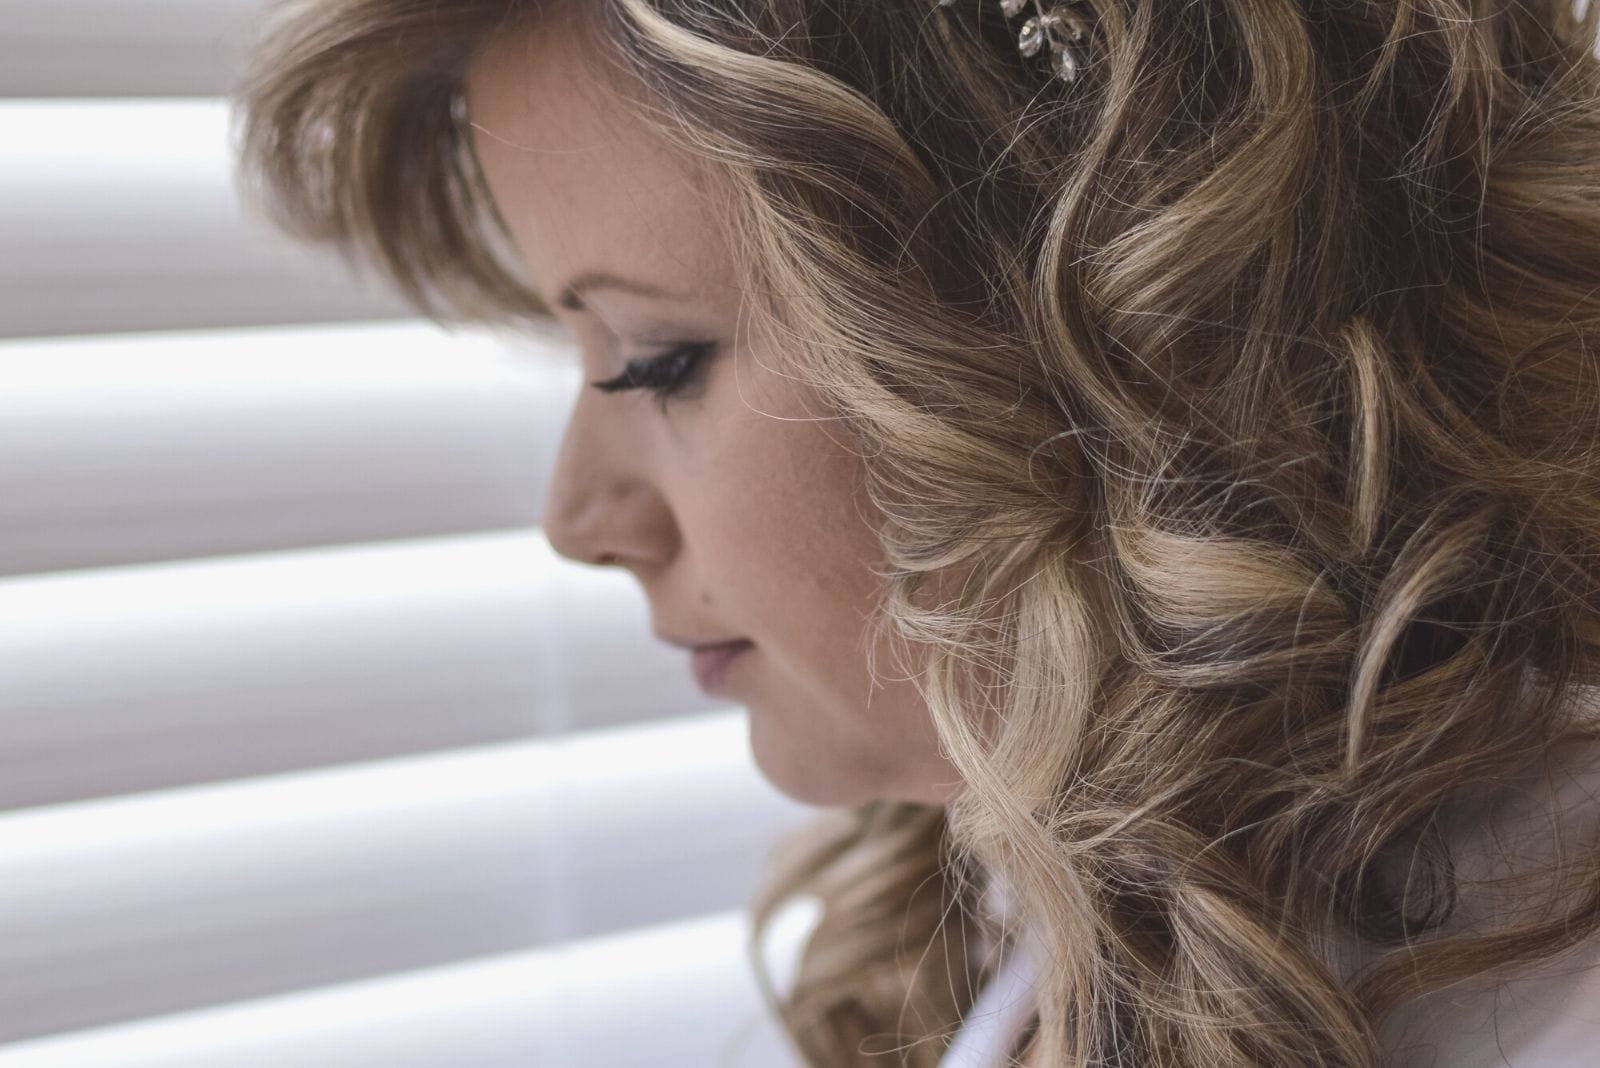 close up sideview photo of a woman standing near the venetian blinds of the room window